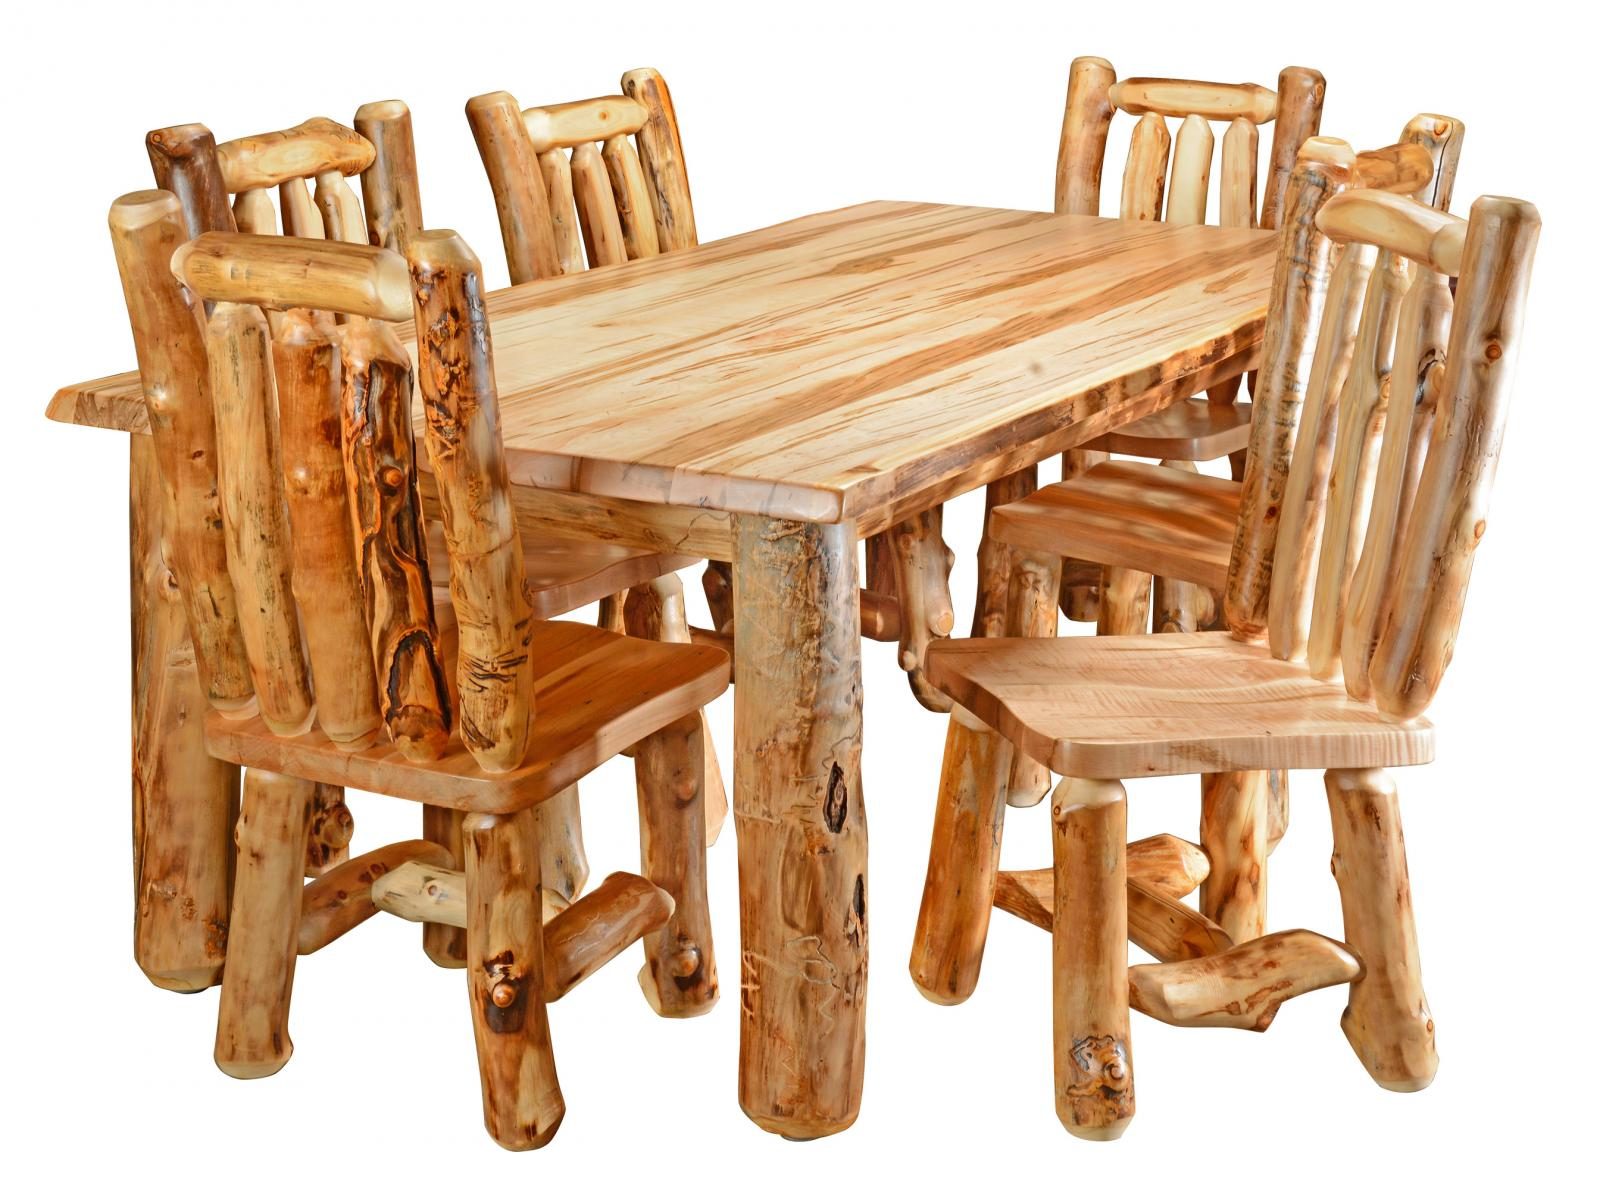 Countryside Rustic Log All American Wholesalers